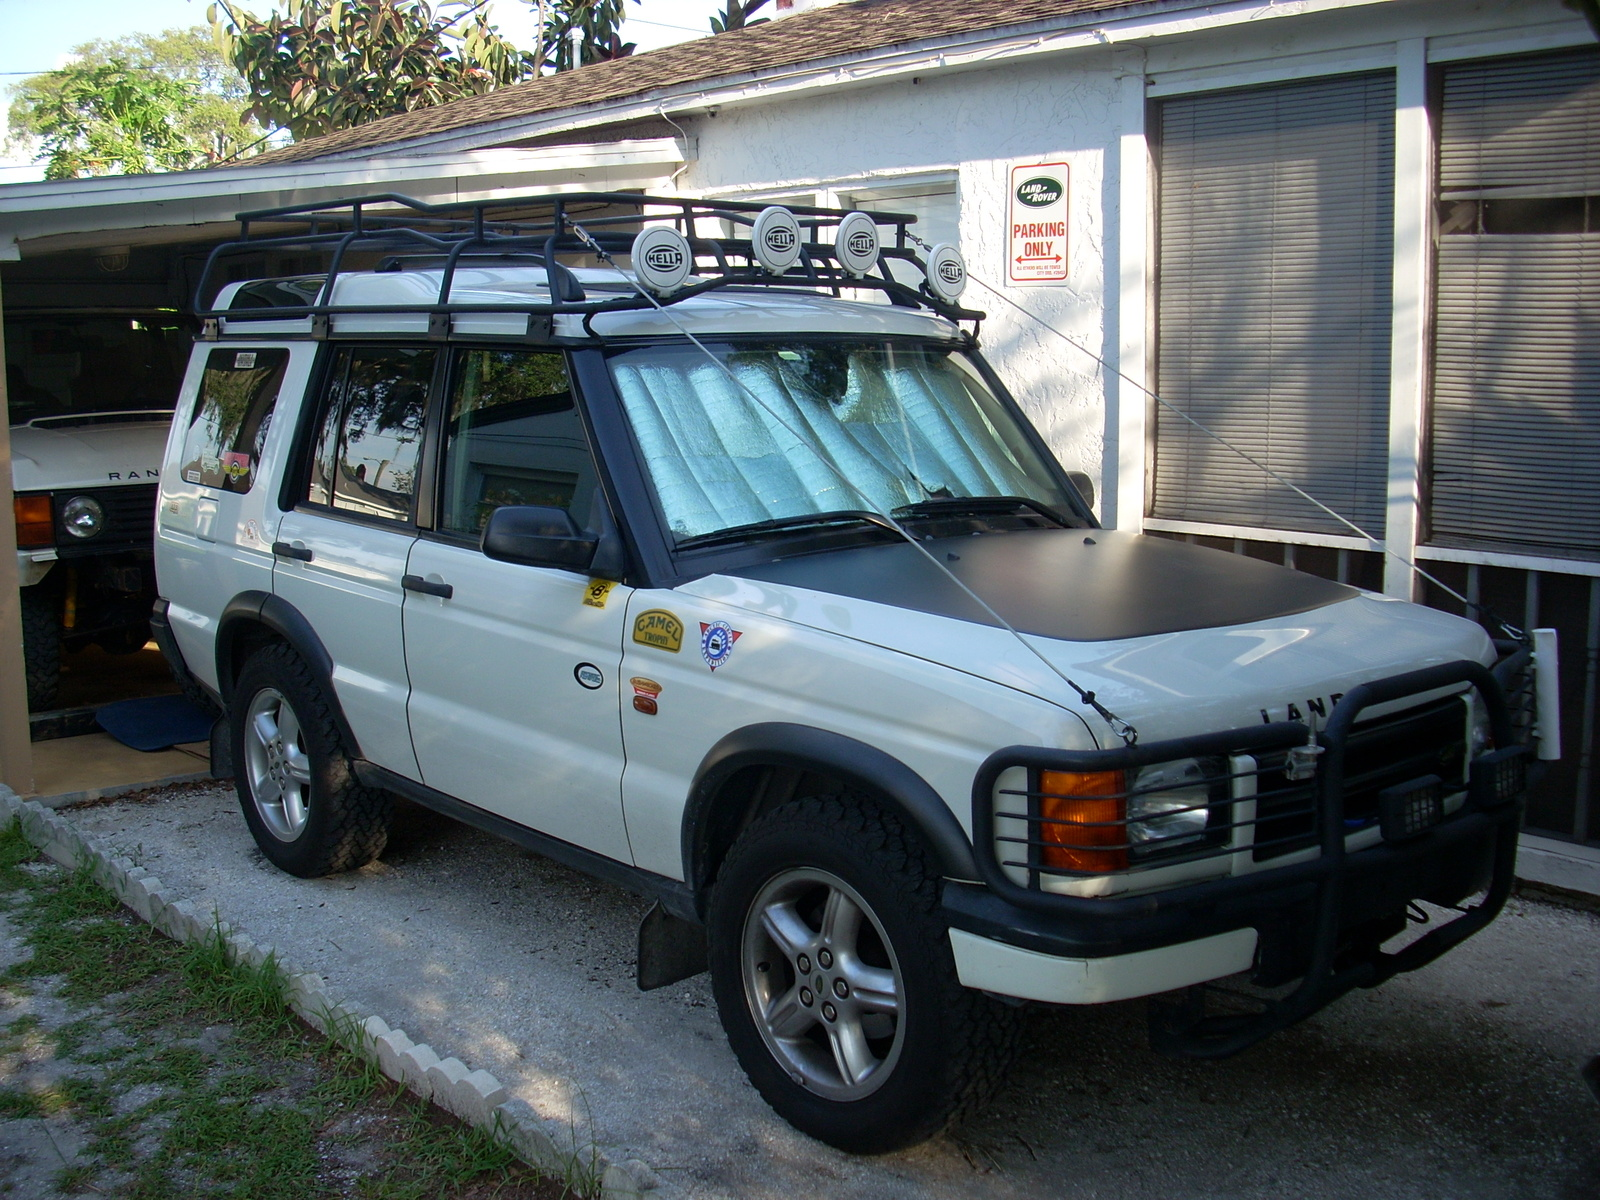 landrover celebrates gallery trophy rover sale camel discovery for years photo s land photos autoblog in u the